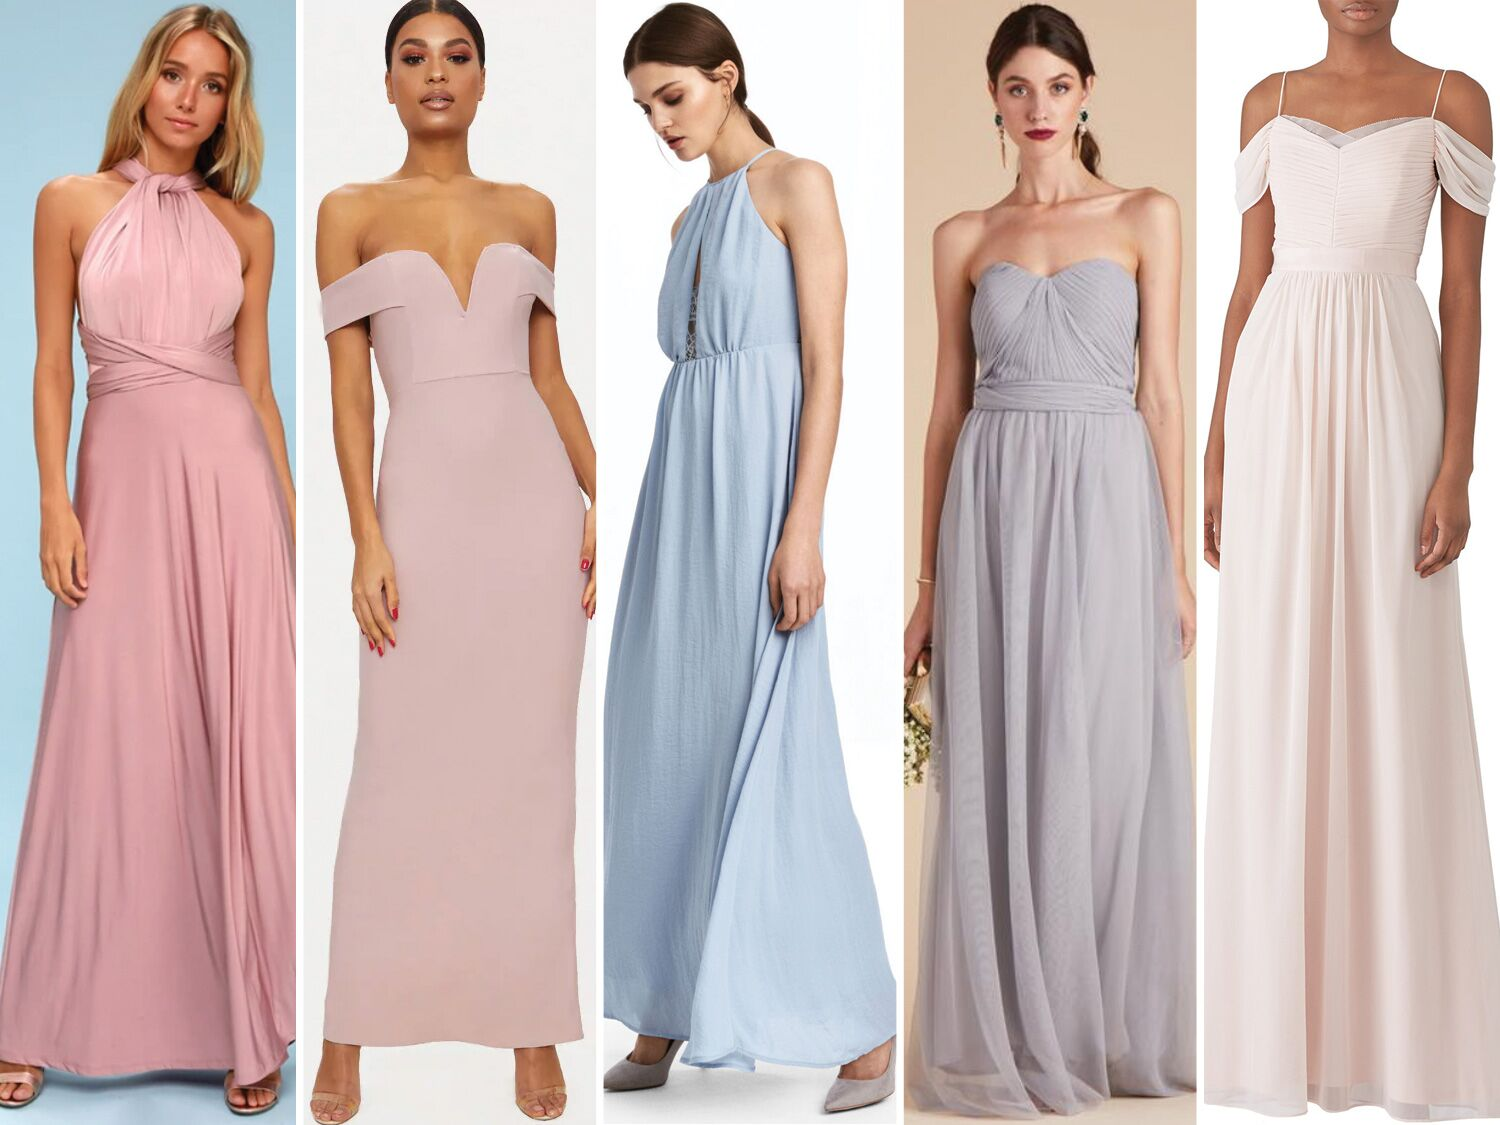 a640f1250431 55 Affordable Bridesmaid Dresses That Don t Look Cheap